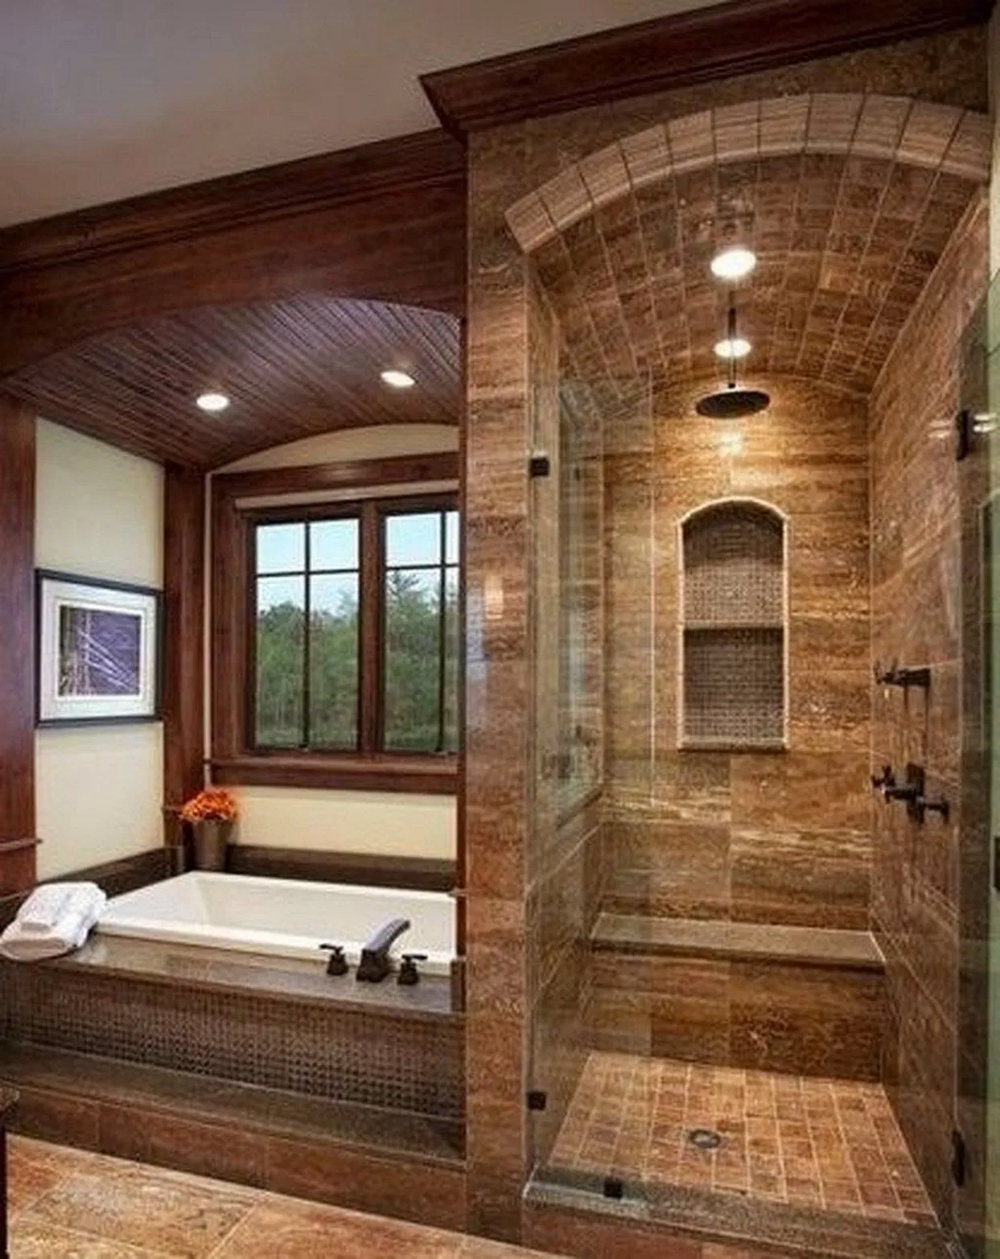 10 Master Bathroom Walk In Shower Ideas 10 With Images Dream